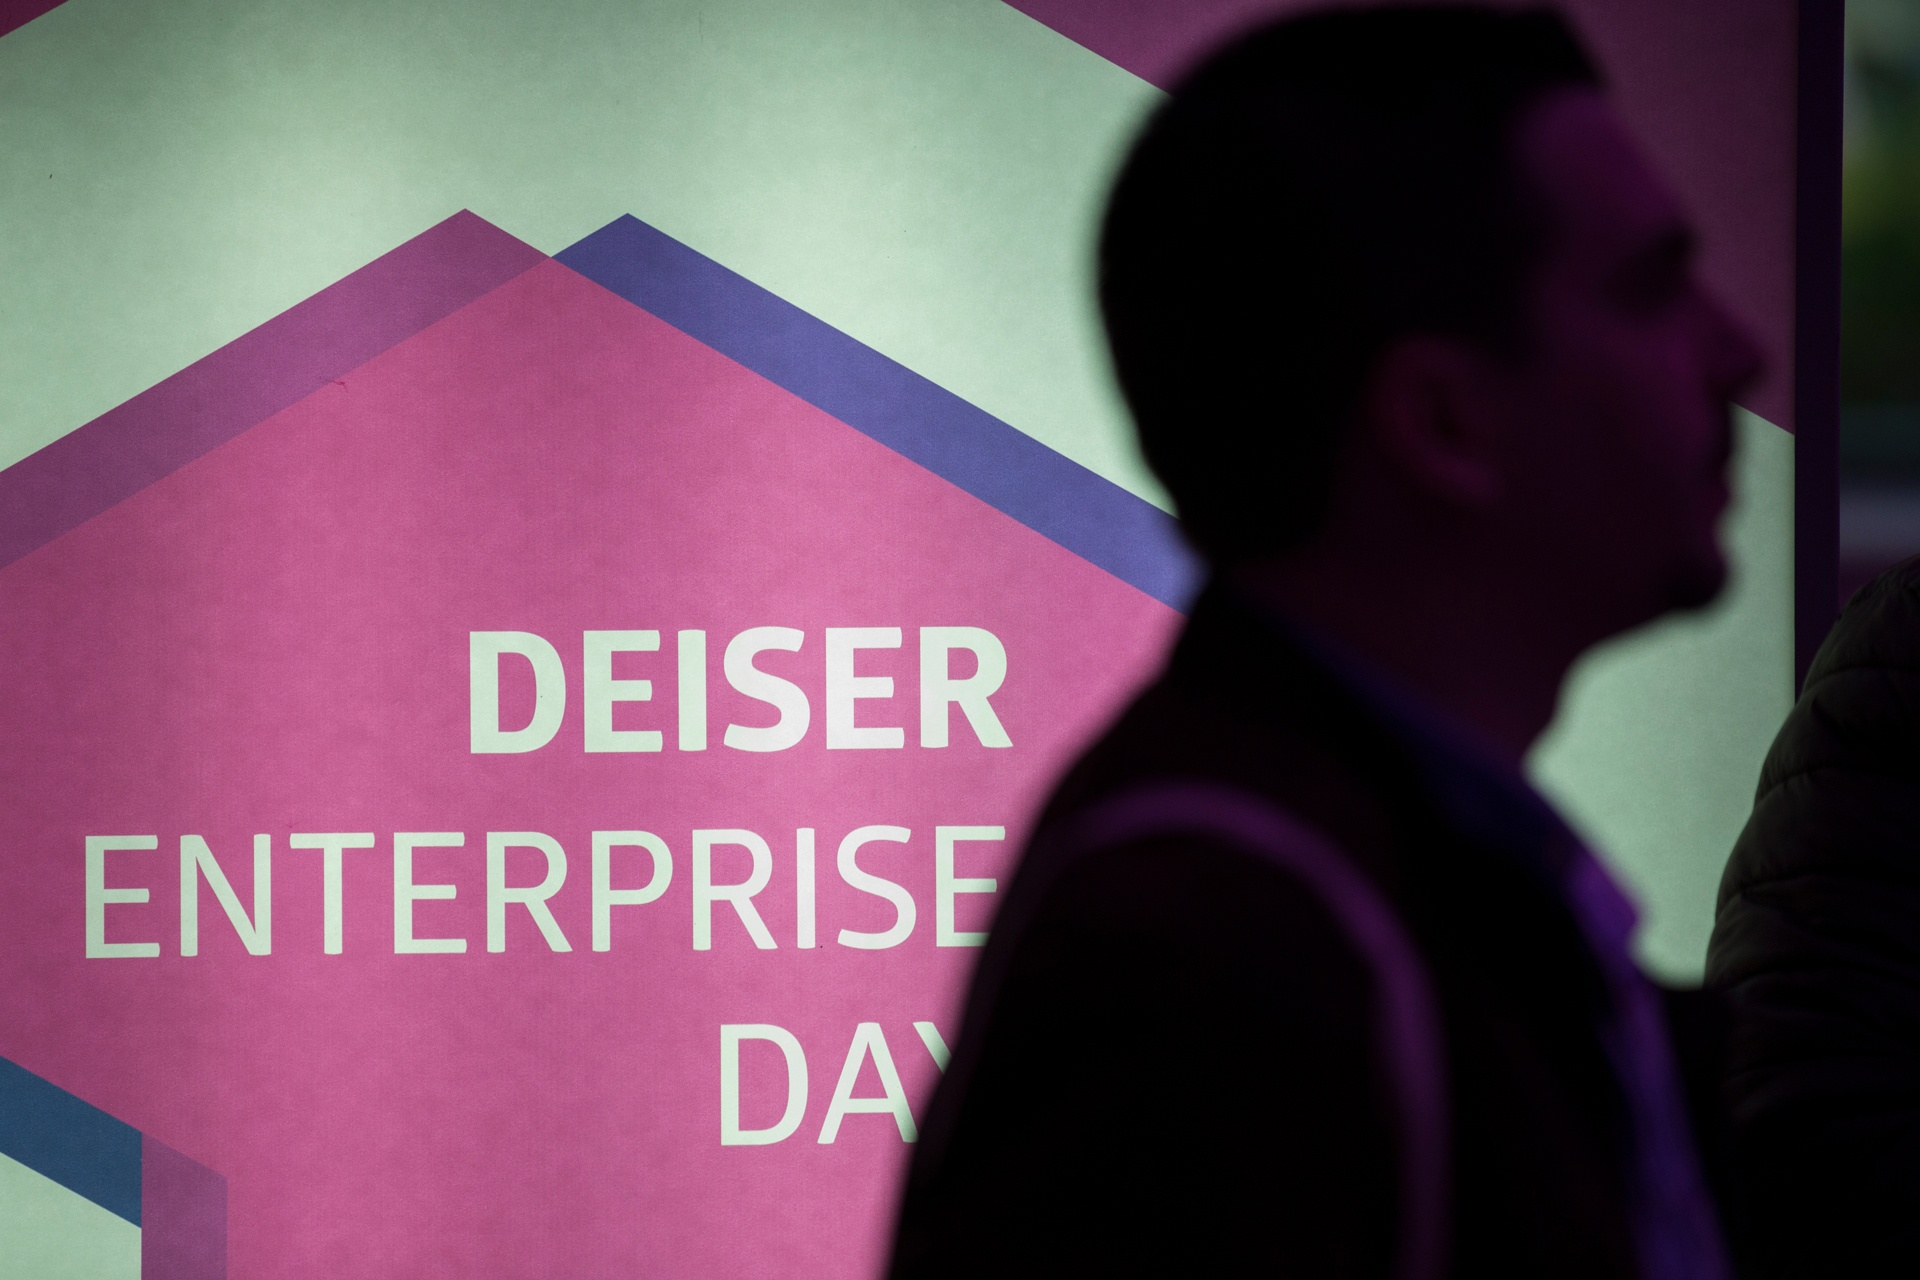 DEISER Enterprise Day Madrid 2017